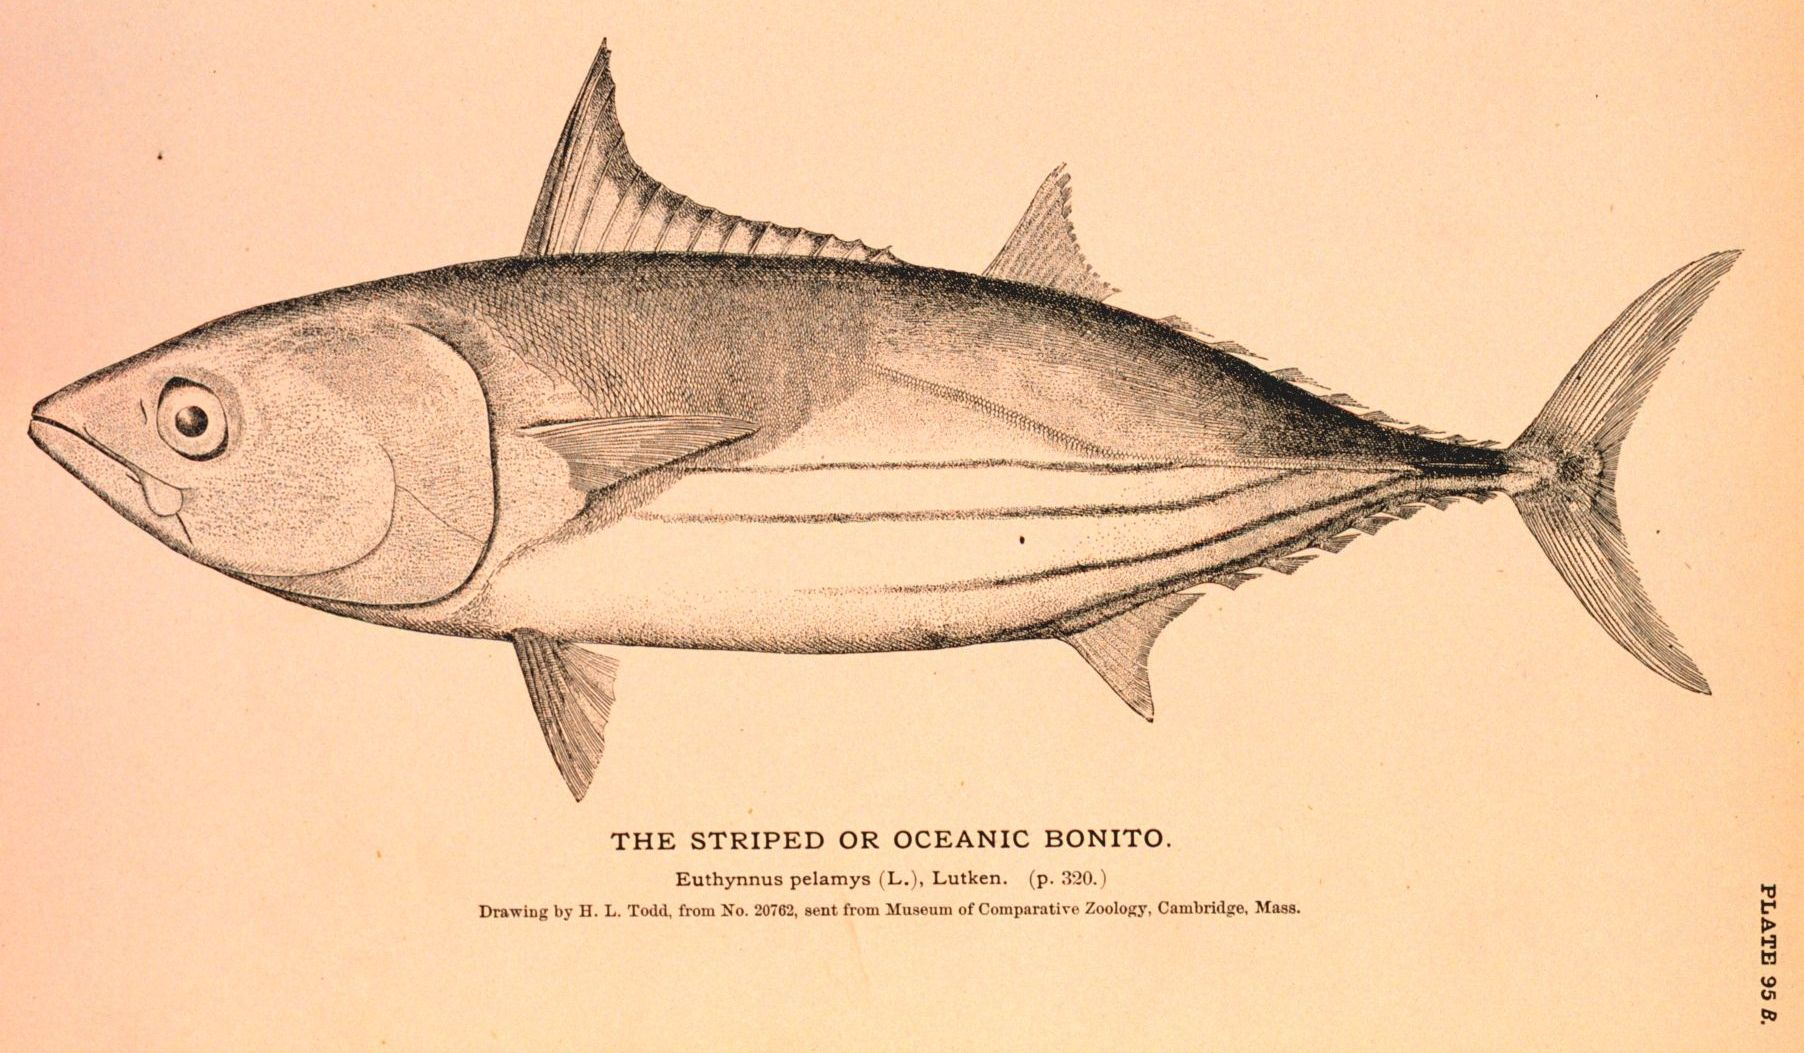 Weight–length relationships & Fulton's condition factors of skipjack tuna